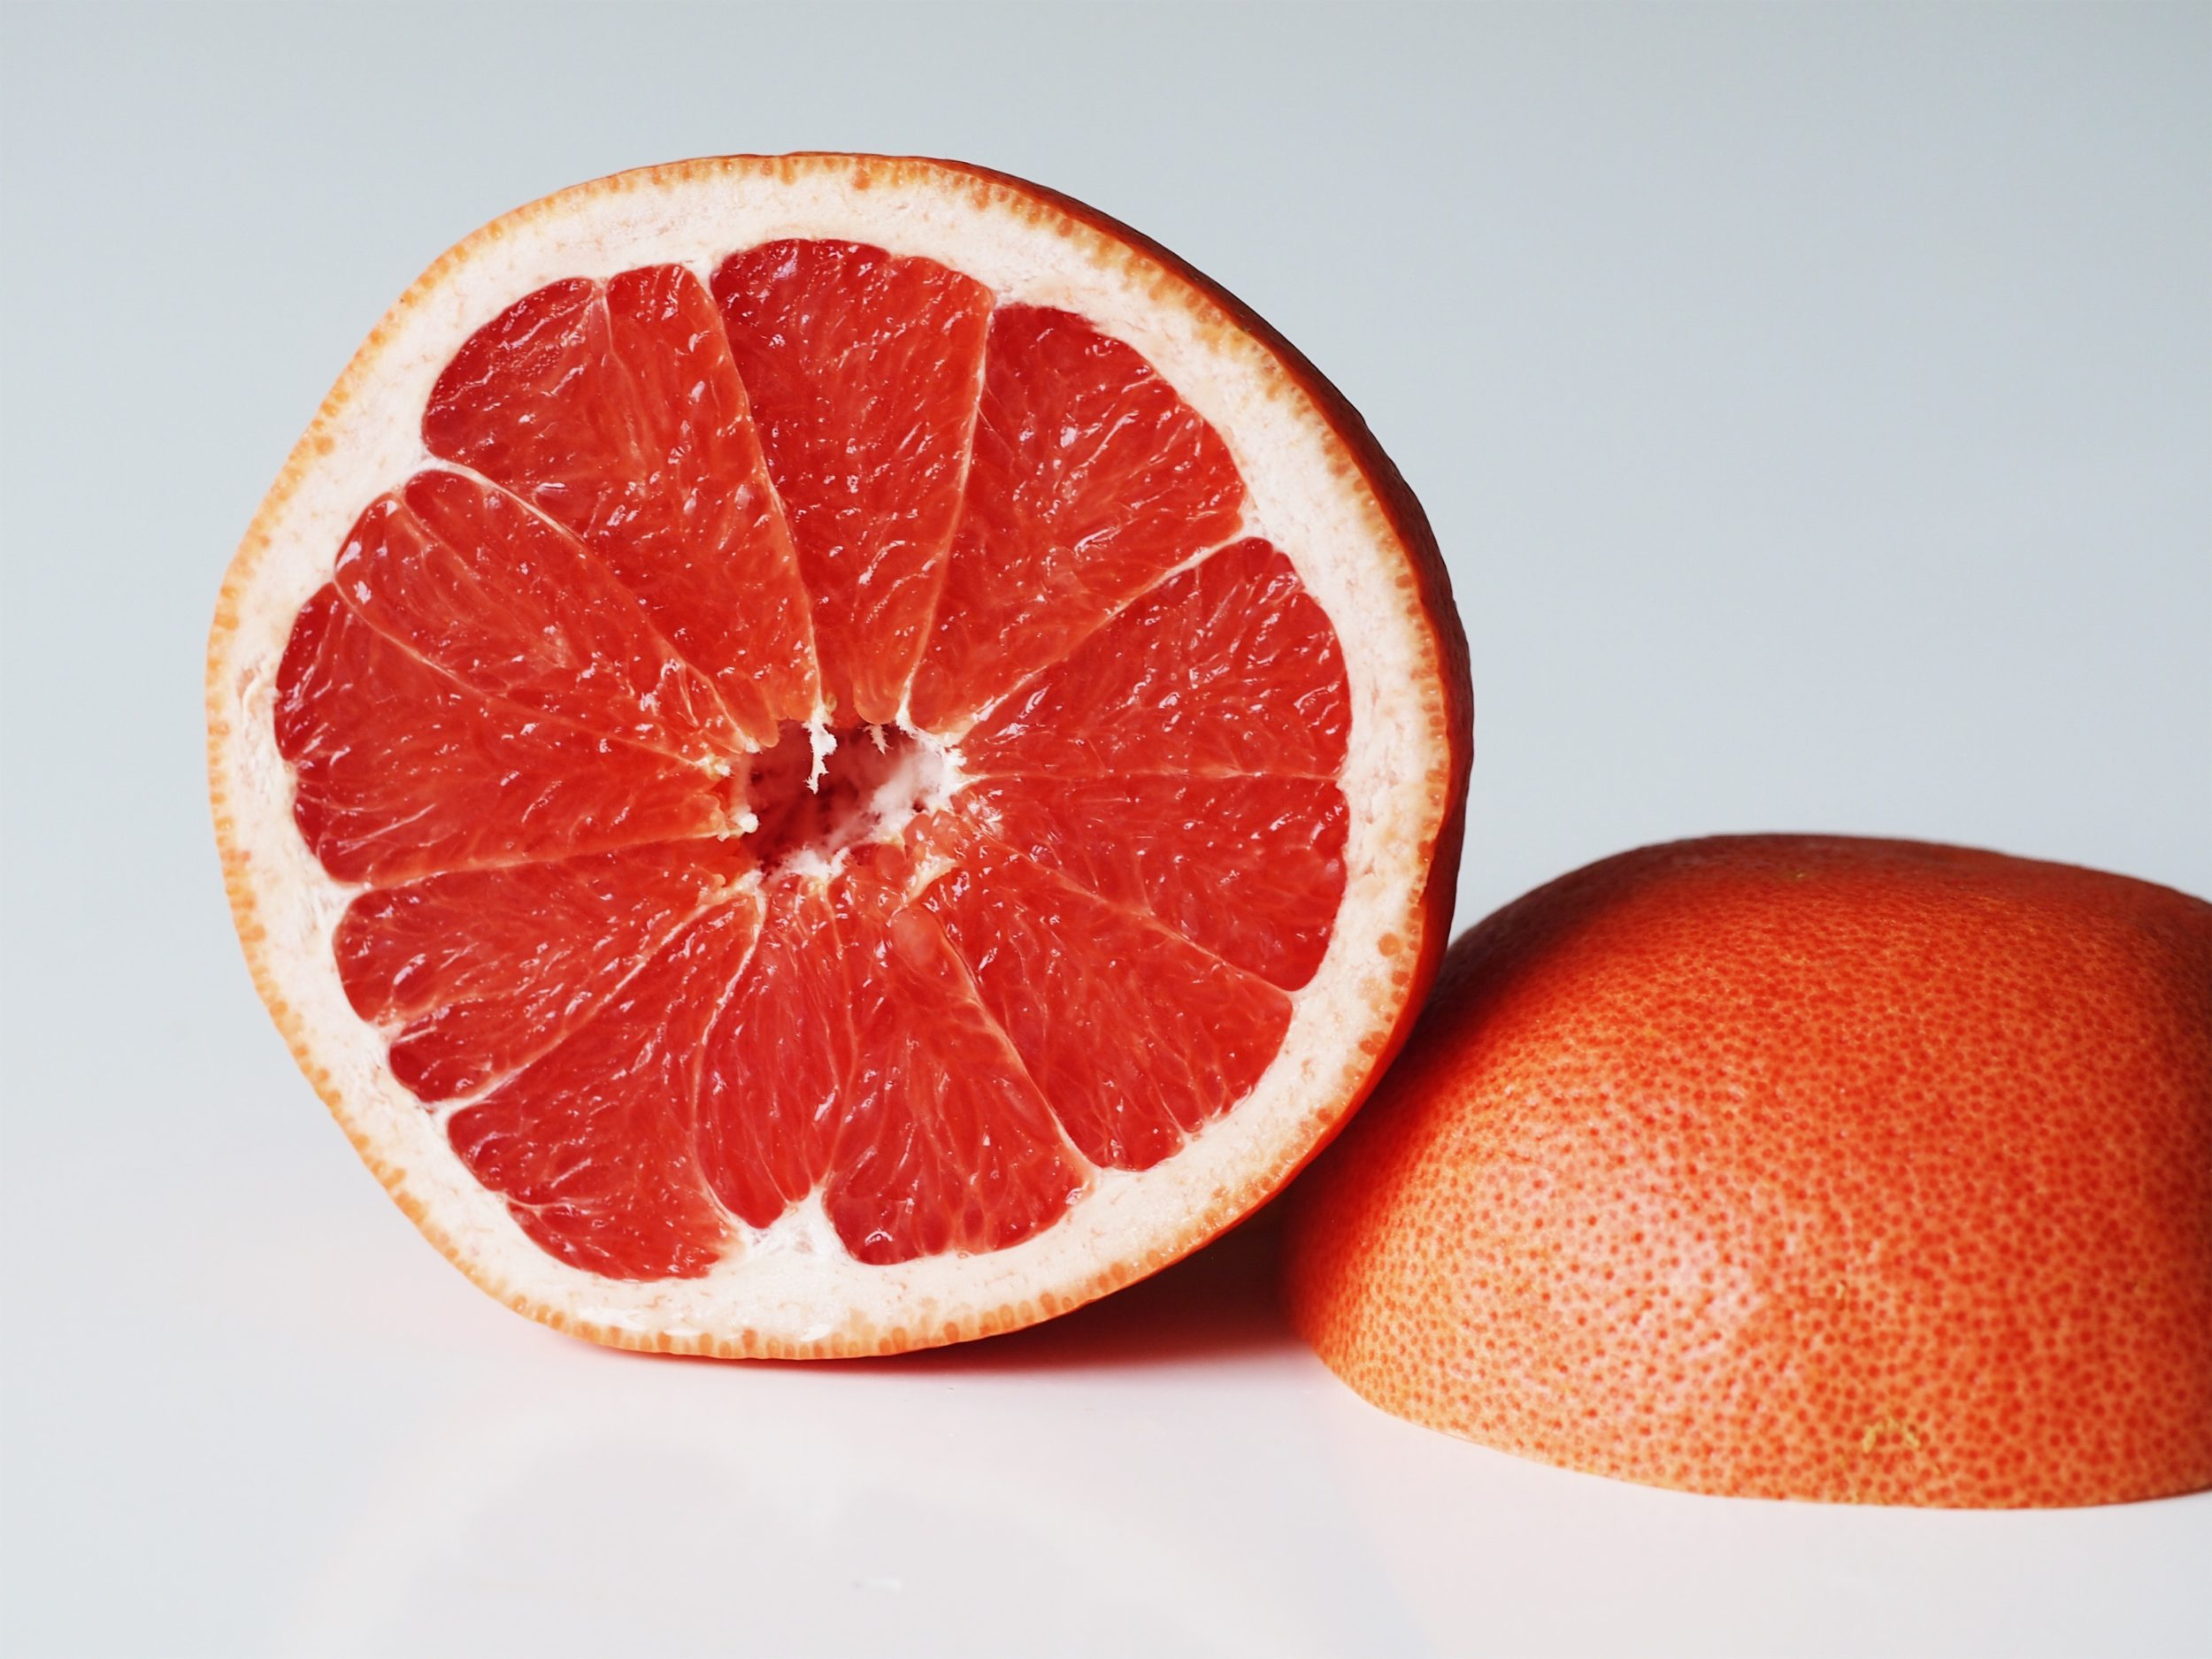 5 Interesting Facts About Grapefruit